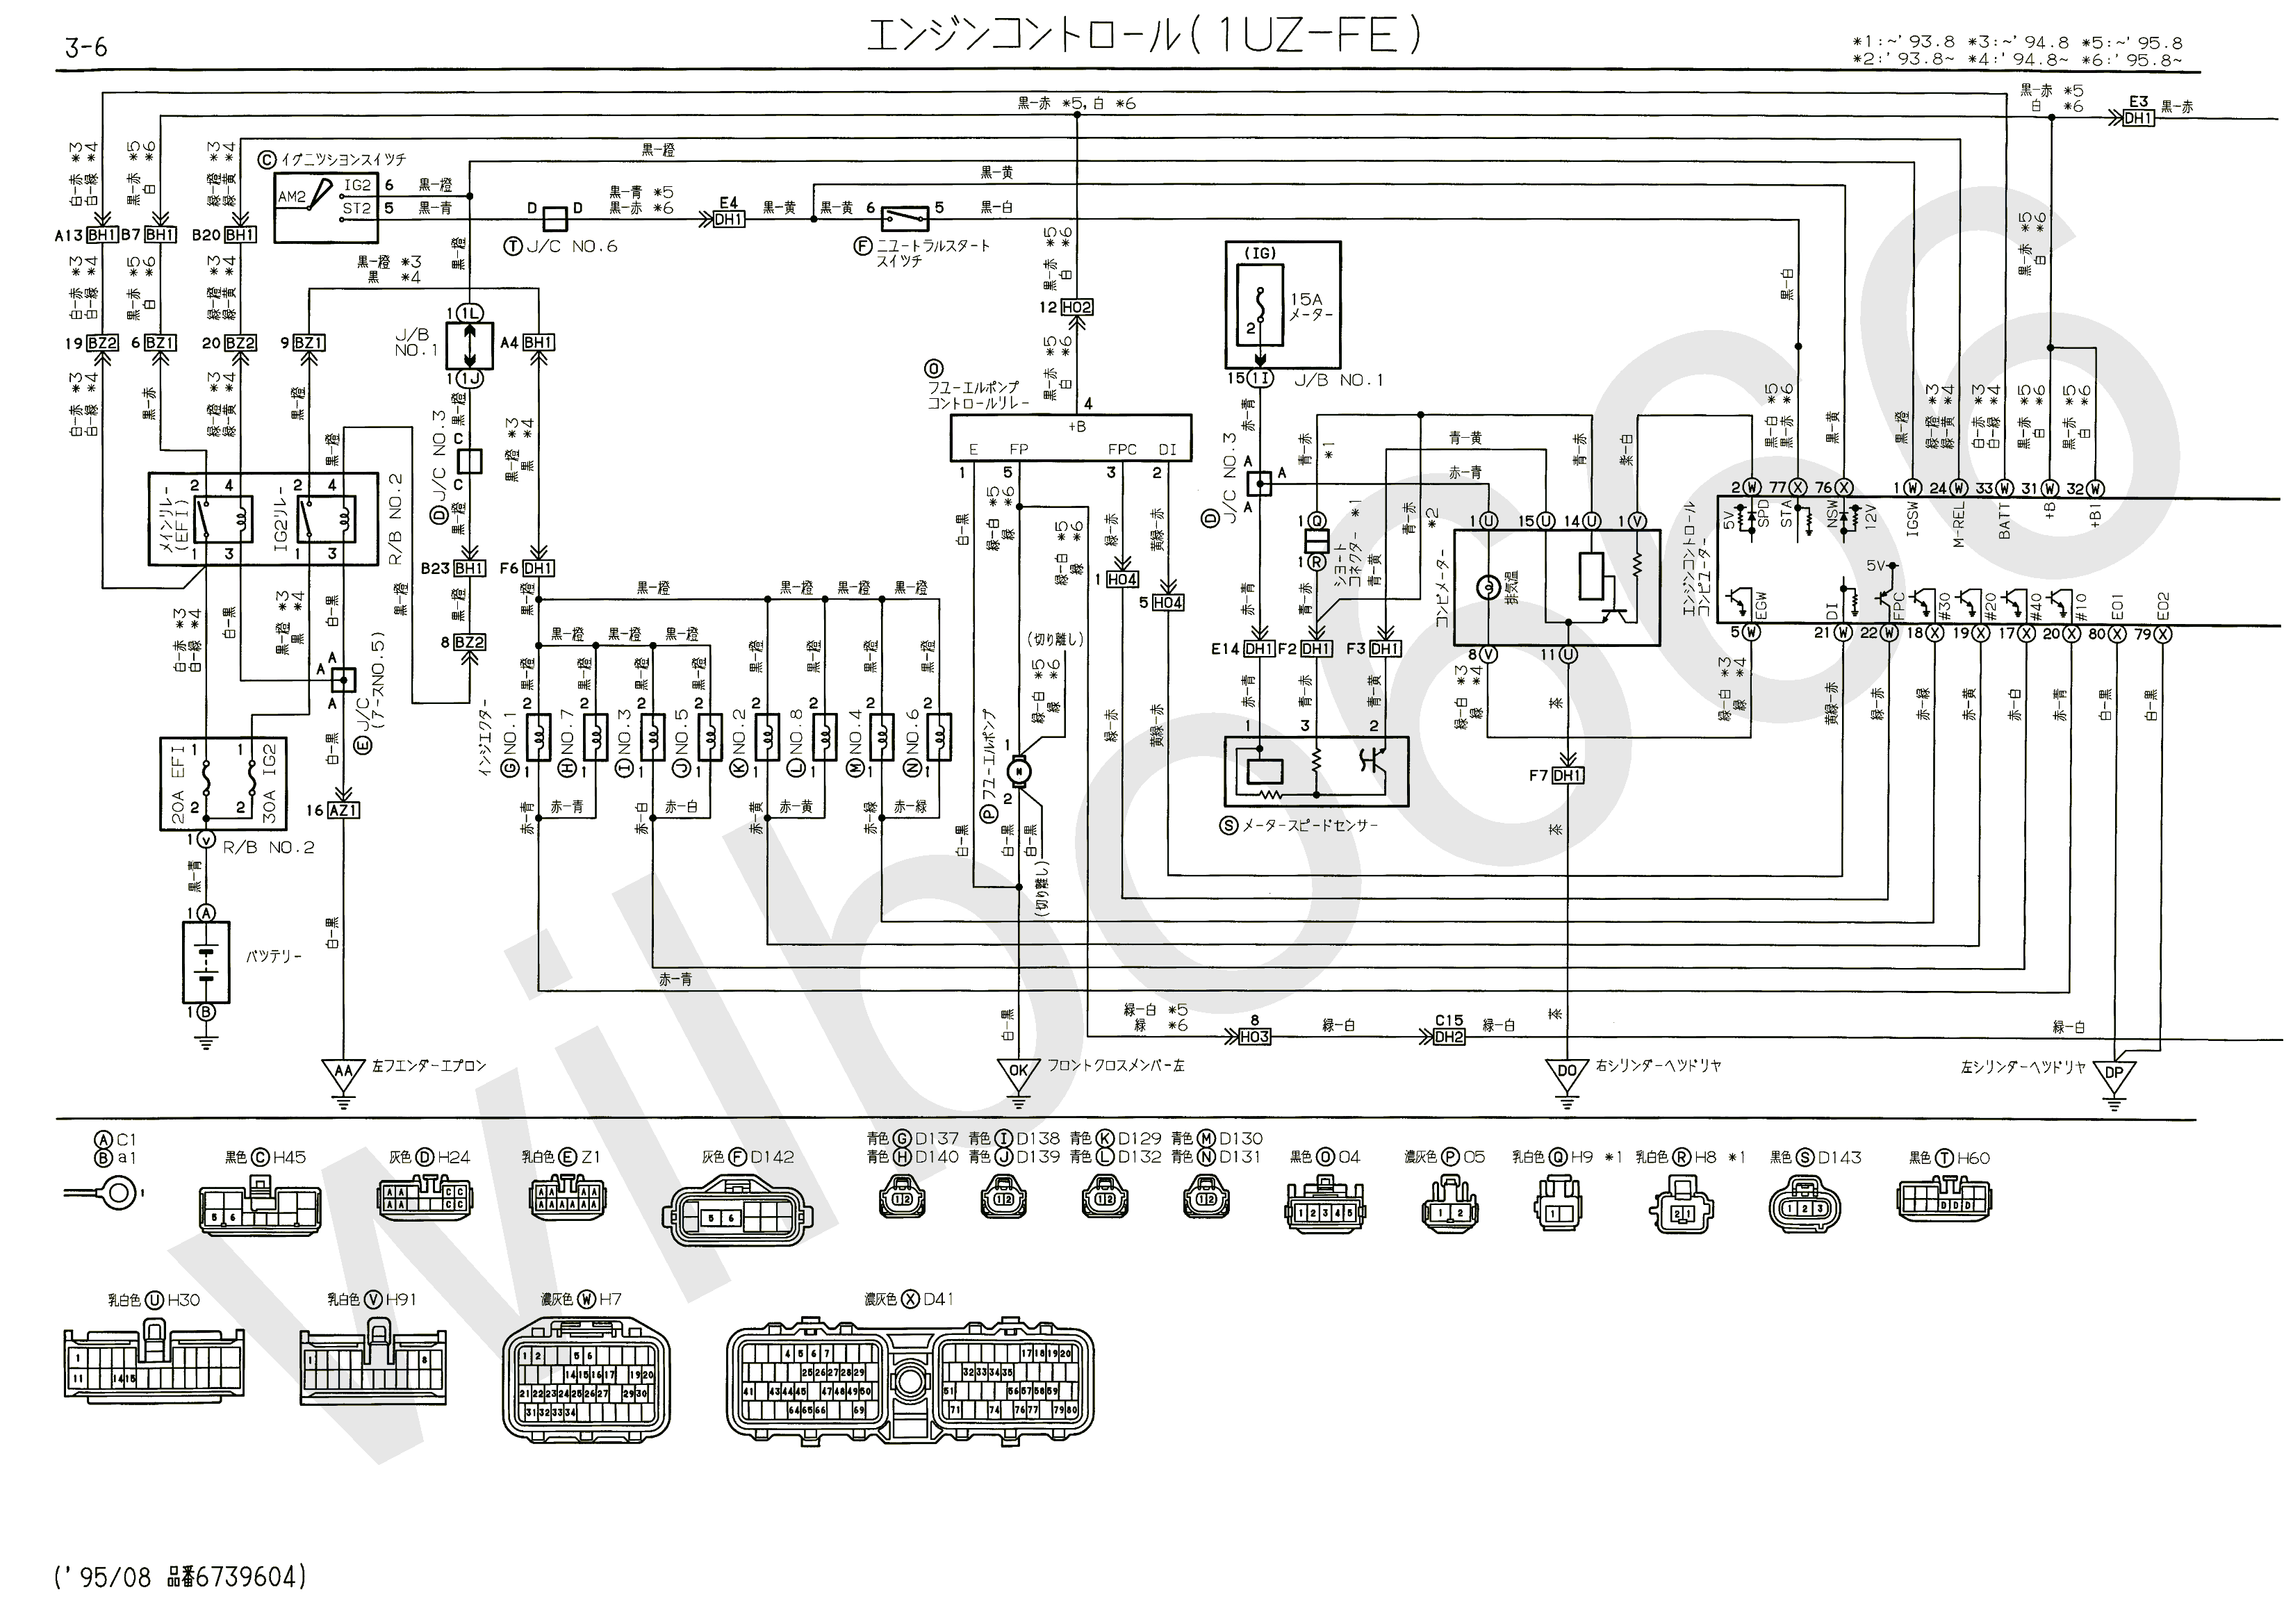 [DIAGRAM] Chevrolet 3 4 Engine Ecu Diagram